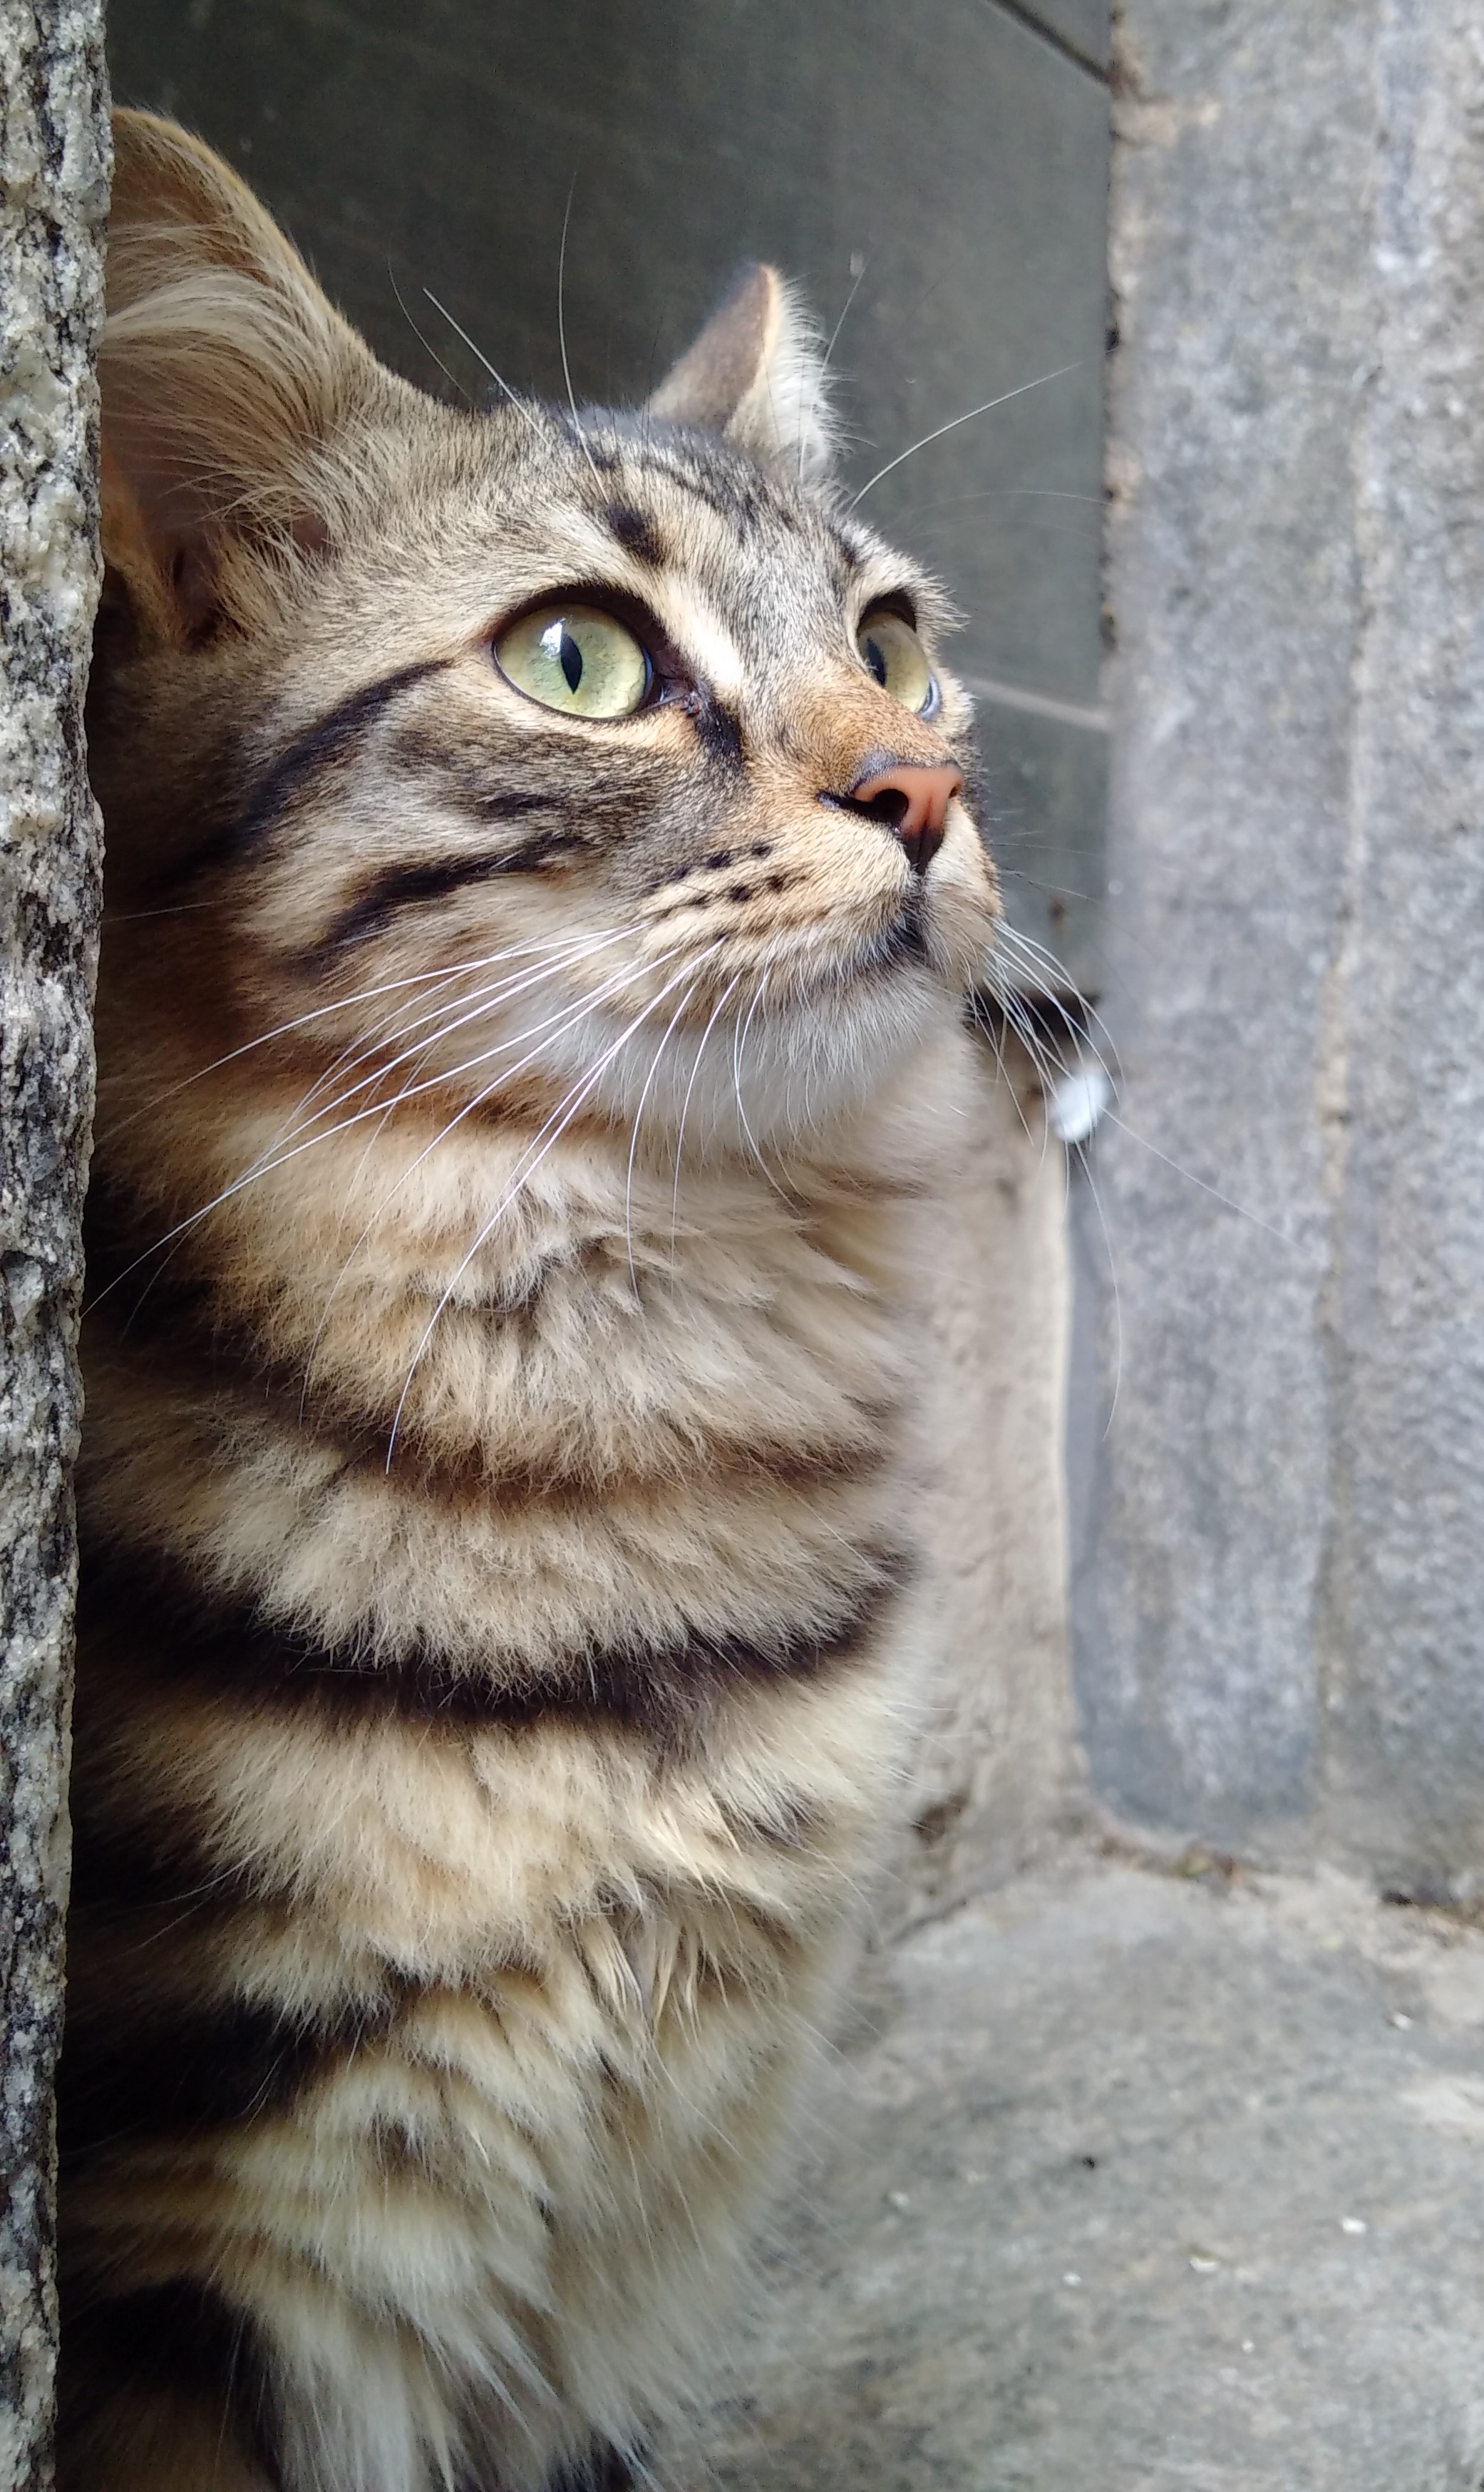 Stray cat in Switzerland photographed with the Blackberry Passport